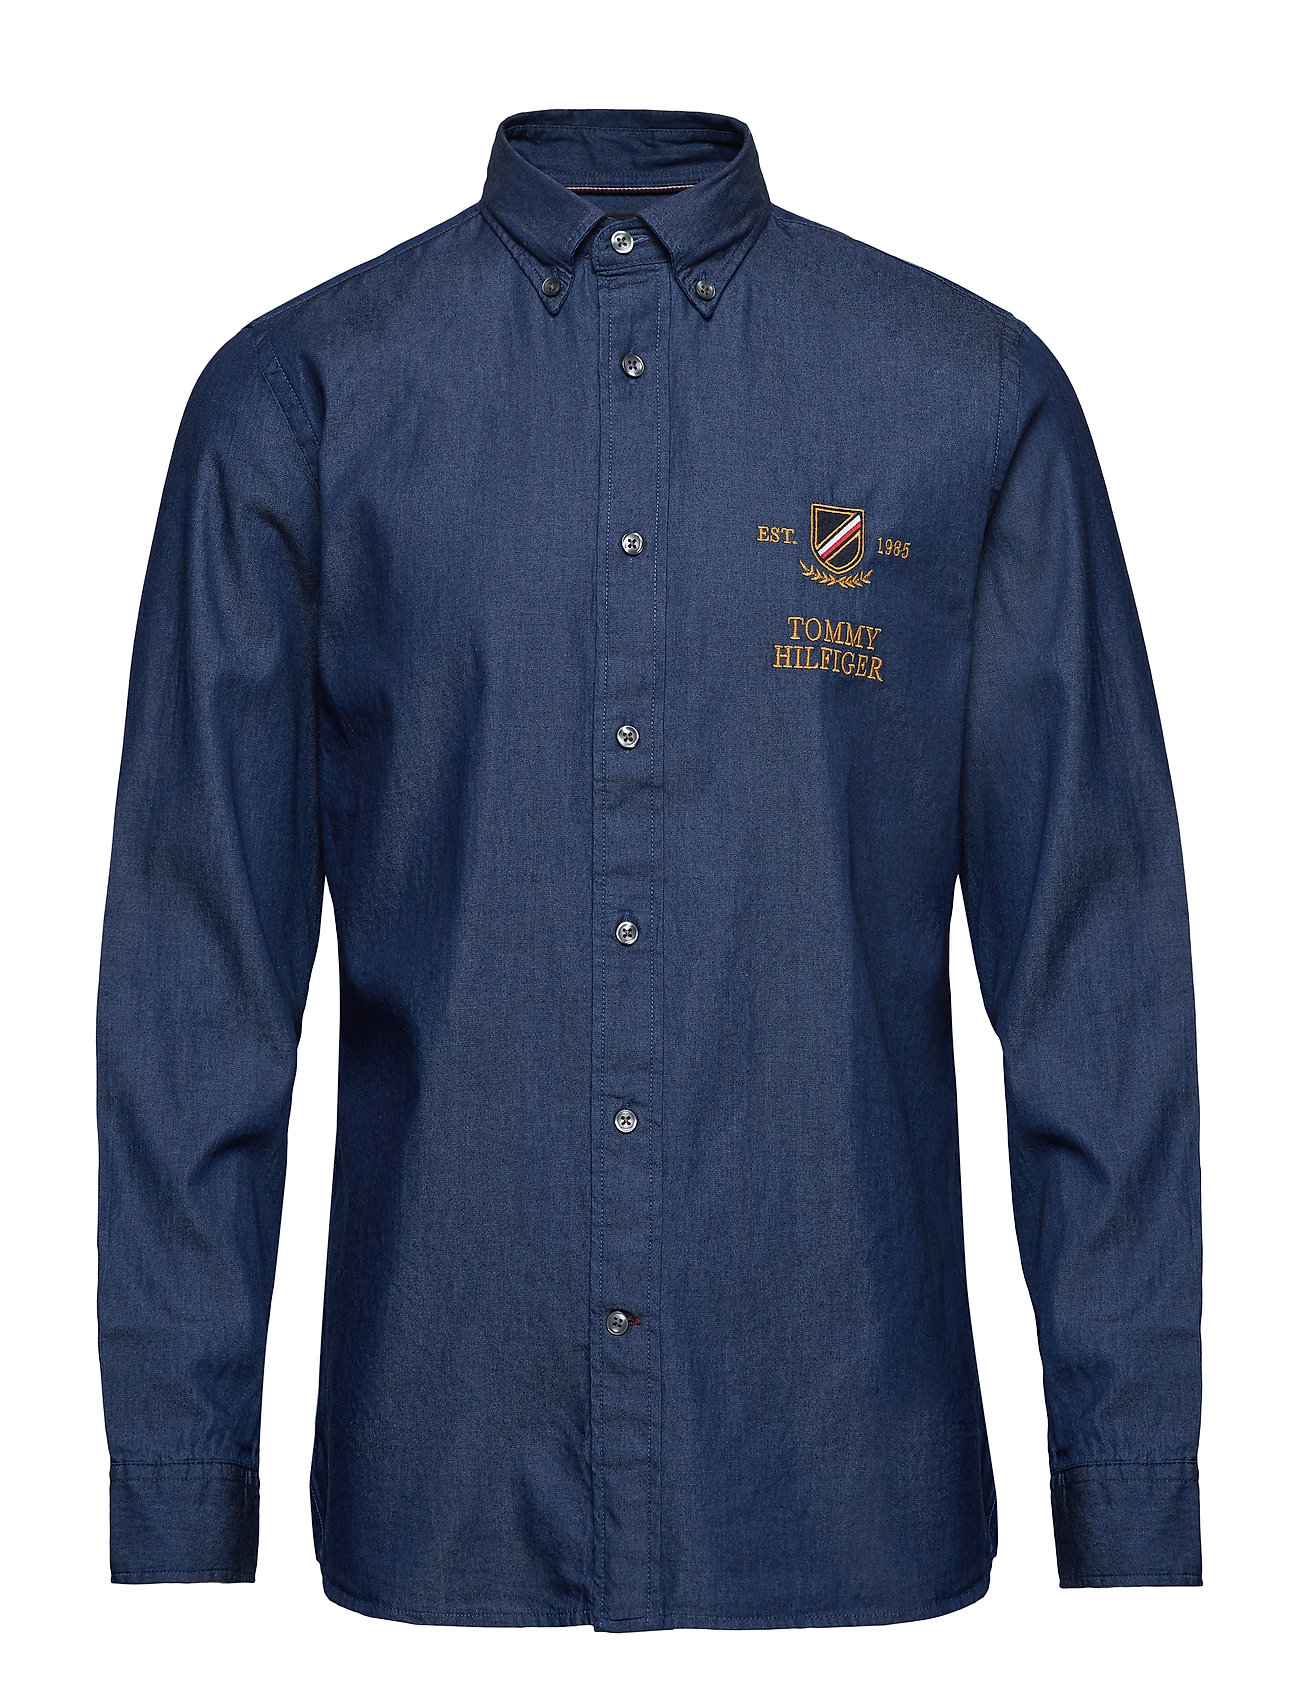 Tommy Hilfiger DENIM EMBROIDERY SHIRT - DARK DENIM